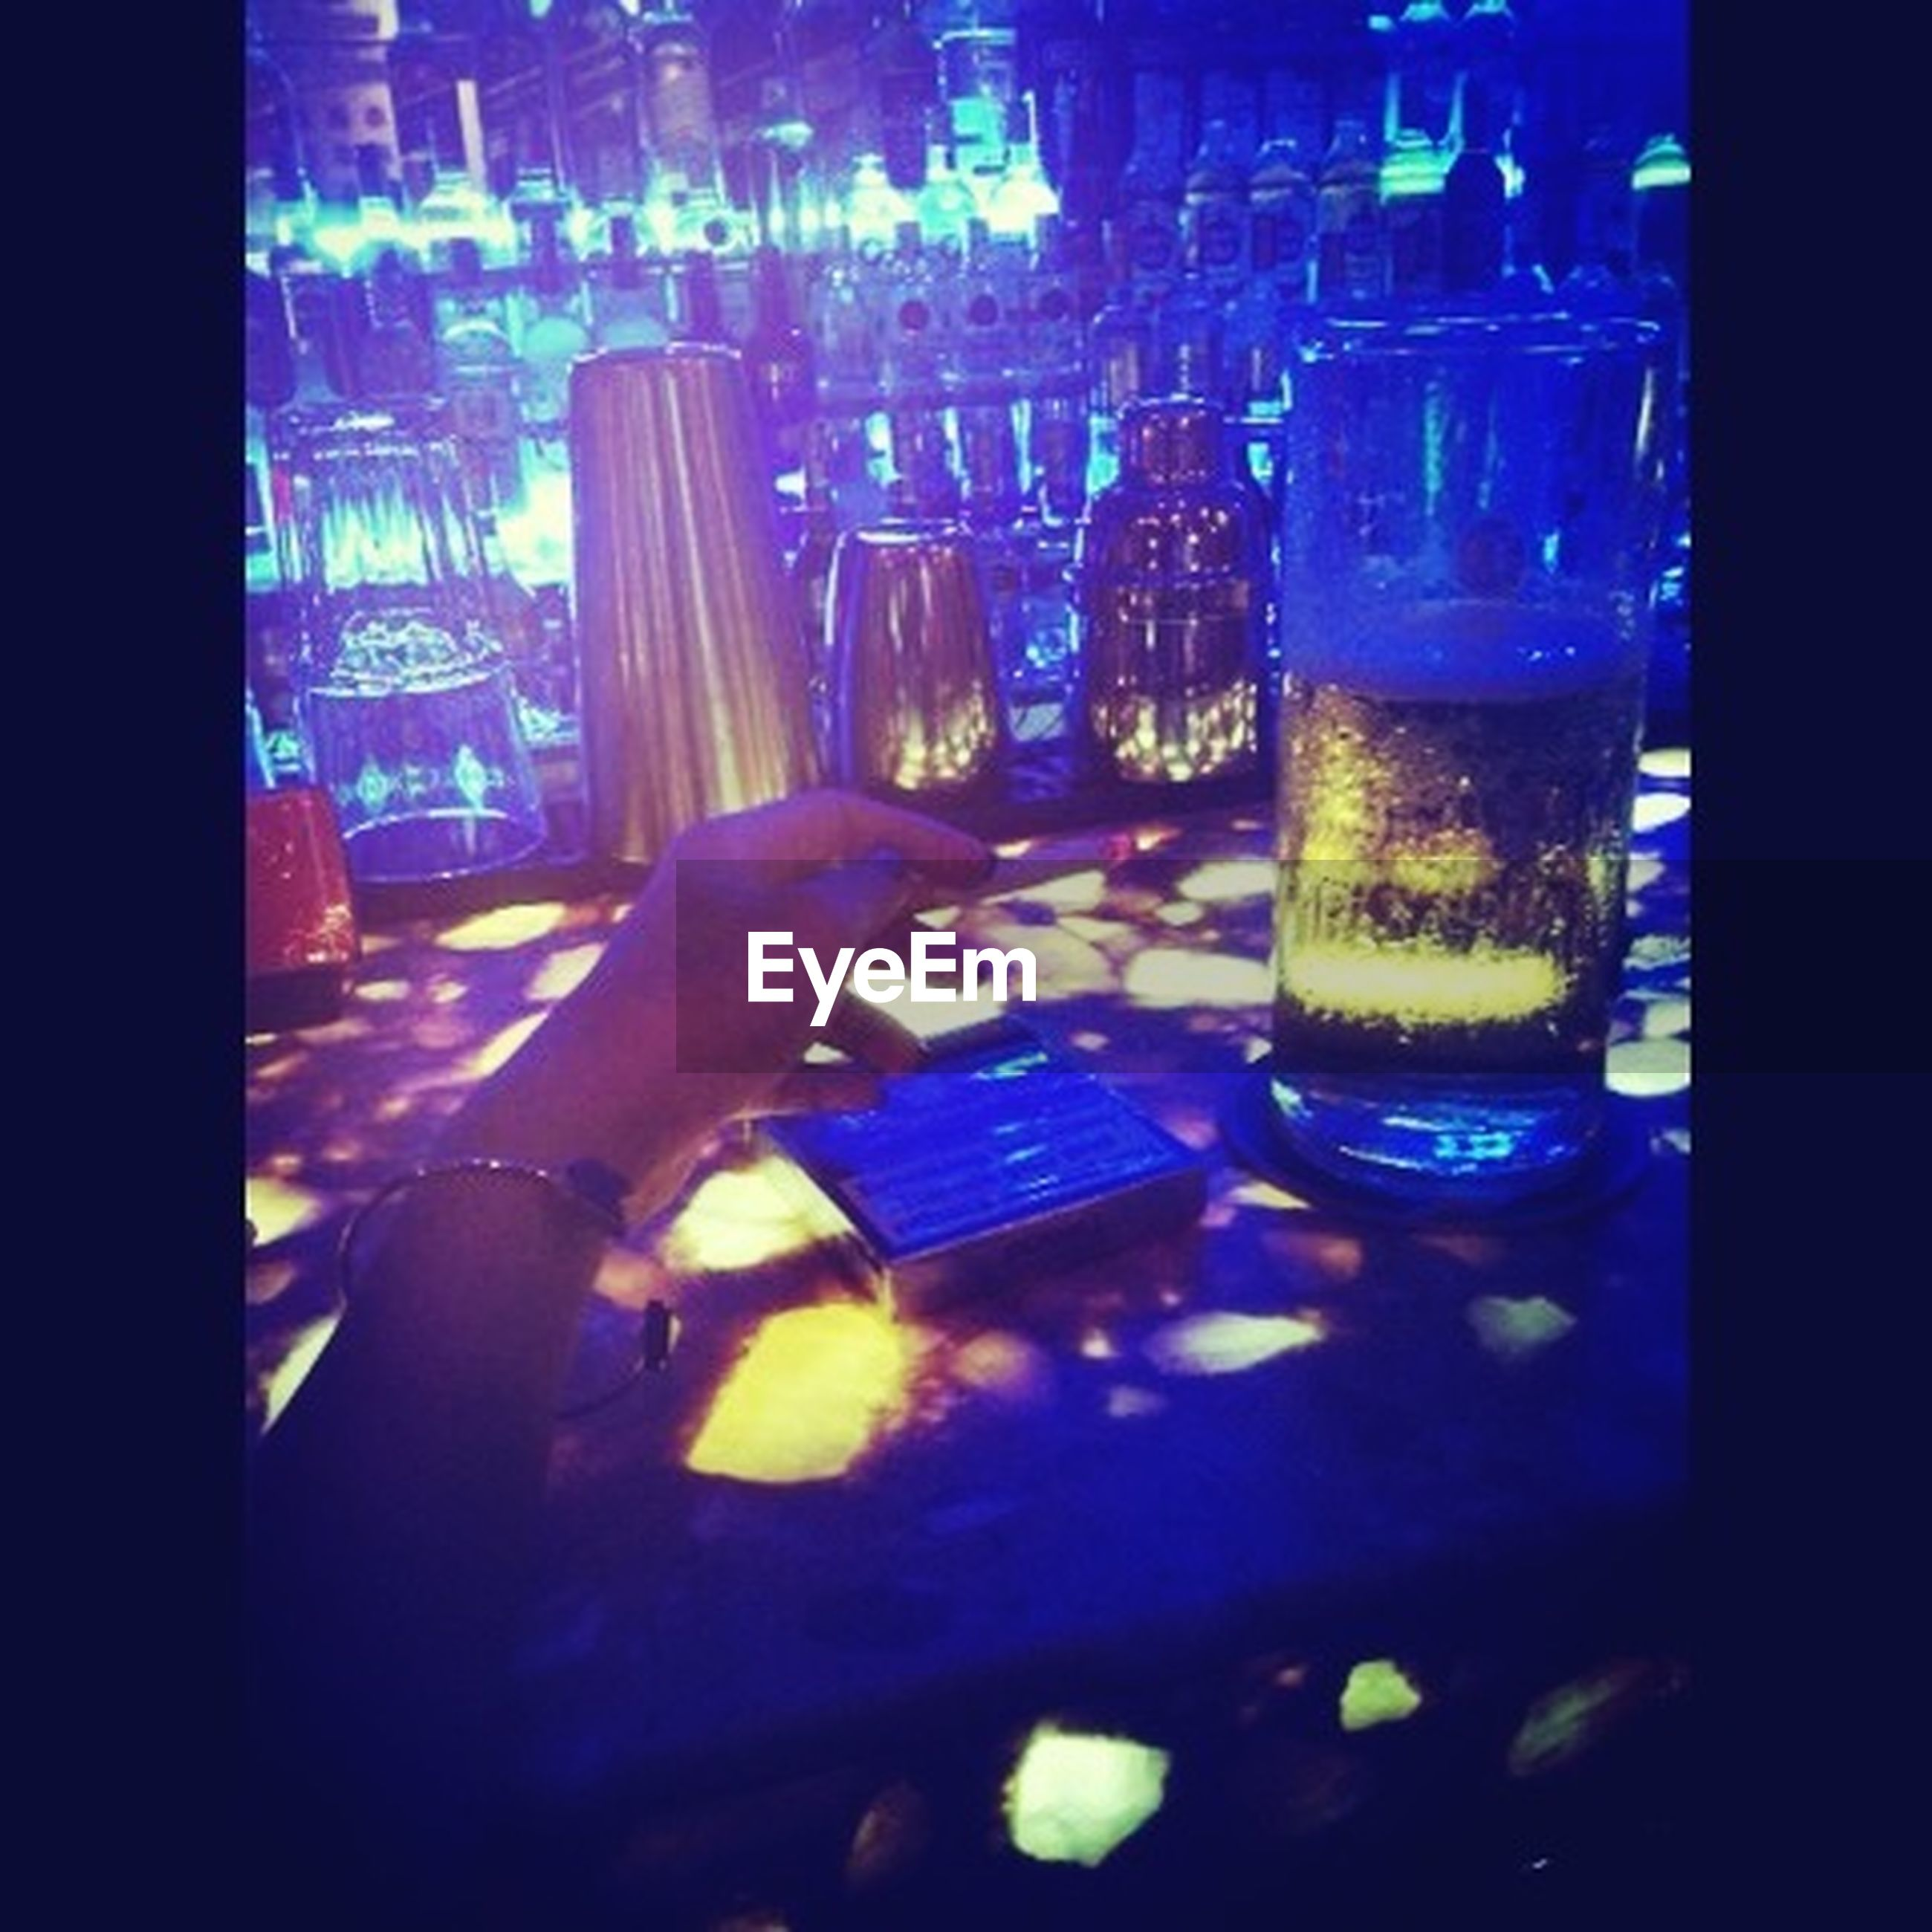 indoors, glass - material, illuminated, person, transparent, blue, close-up, auto post production filter, technology, window, transfer print, men, food and drink, reflection, holding, part of, night, bottle